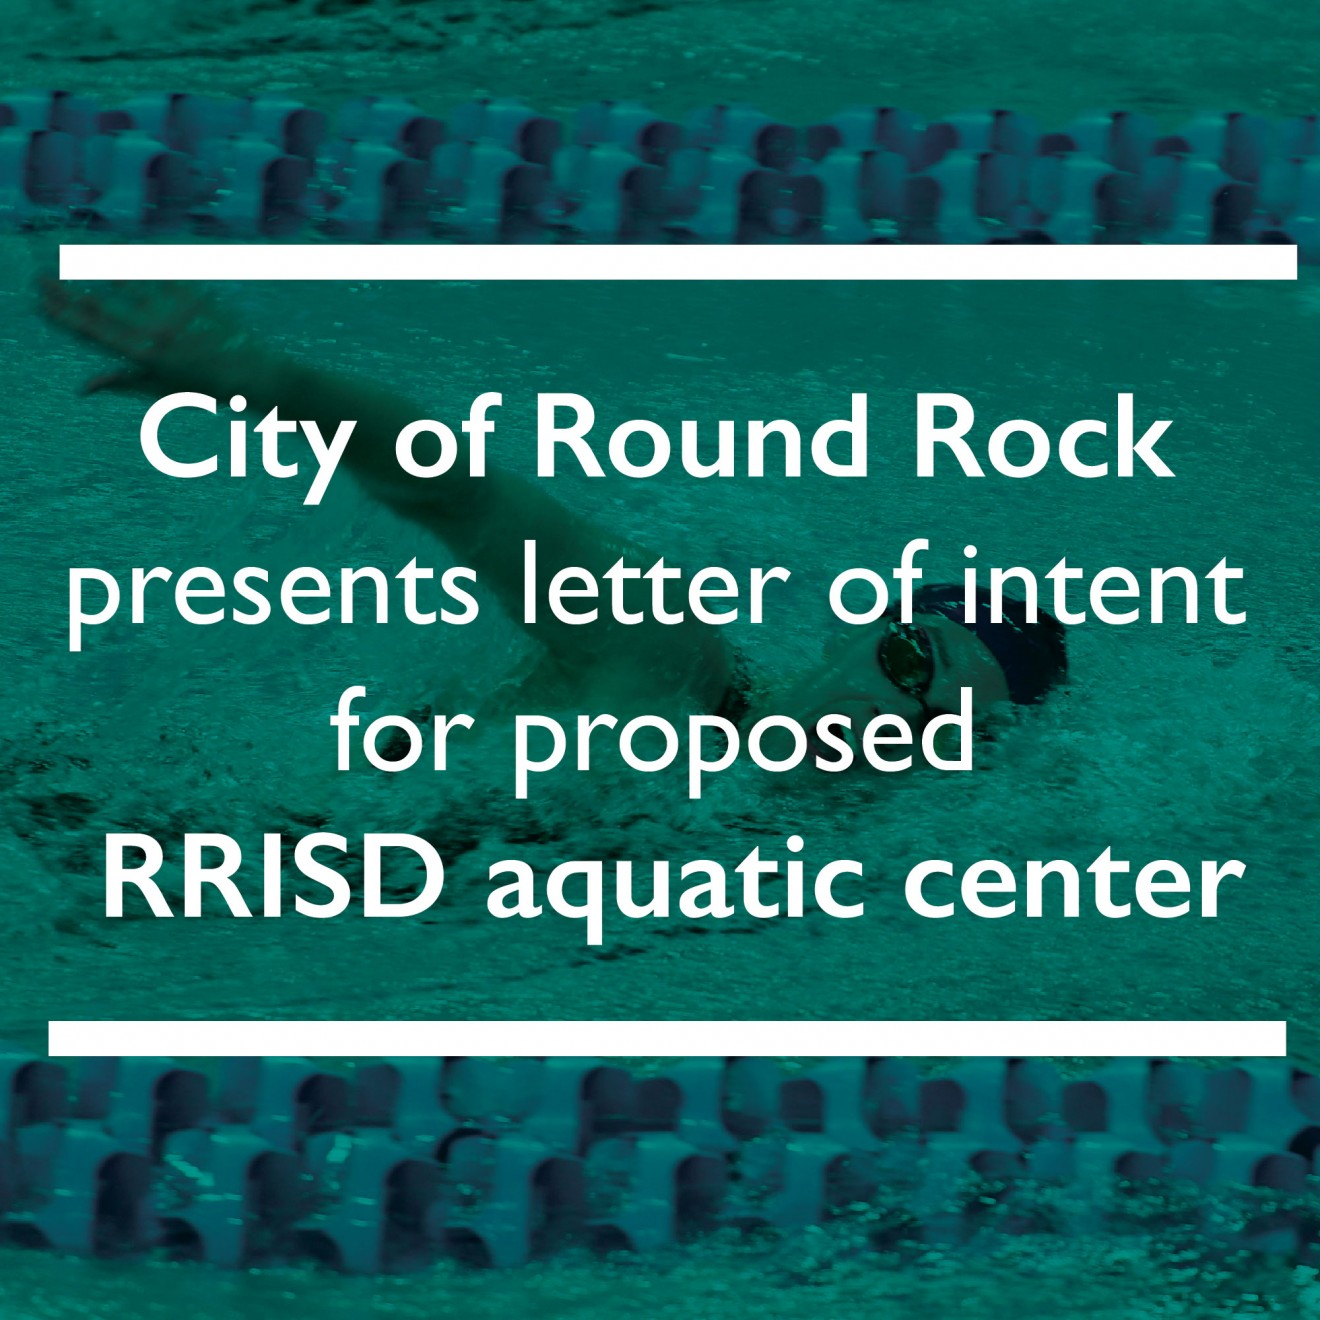 City of Round Rock presents letter of intent for proposed RRISD aquatic center